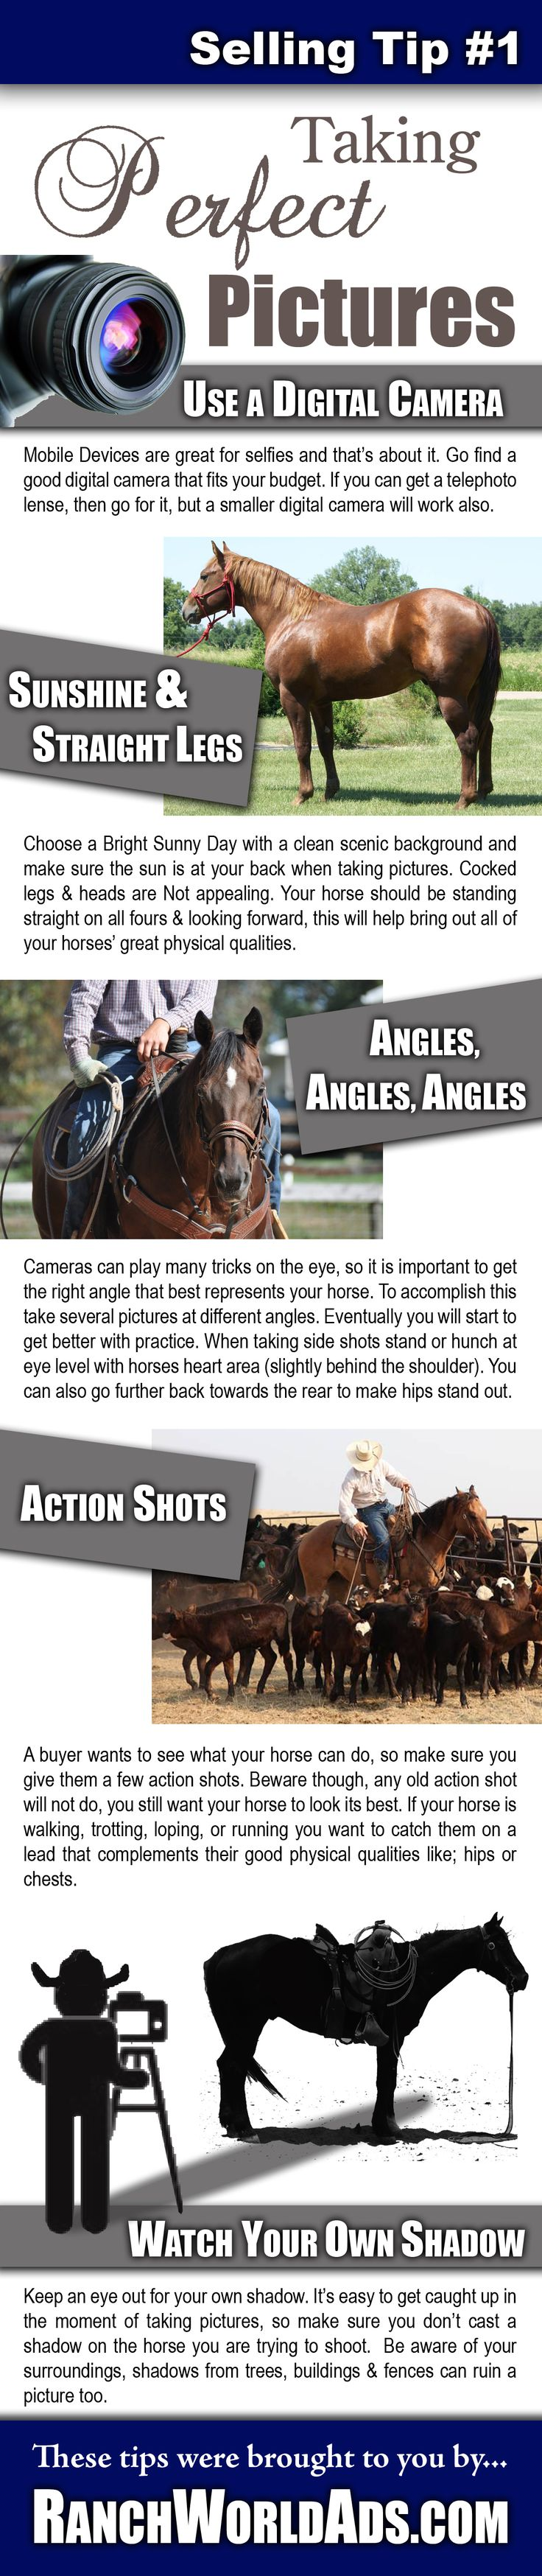 Tip # 1 for Selling Horses Online - Taking Perfect Pictures